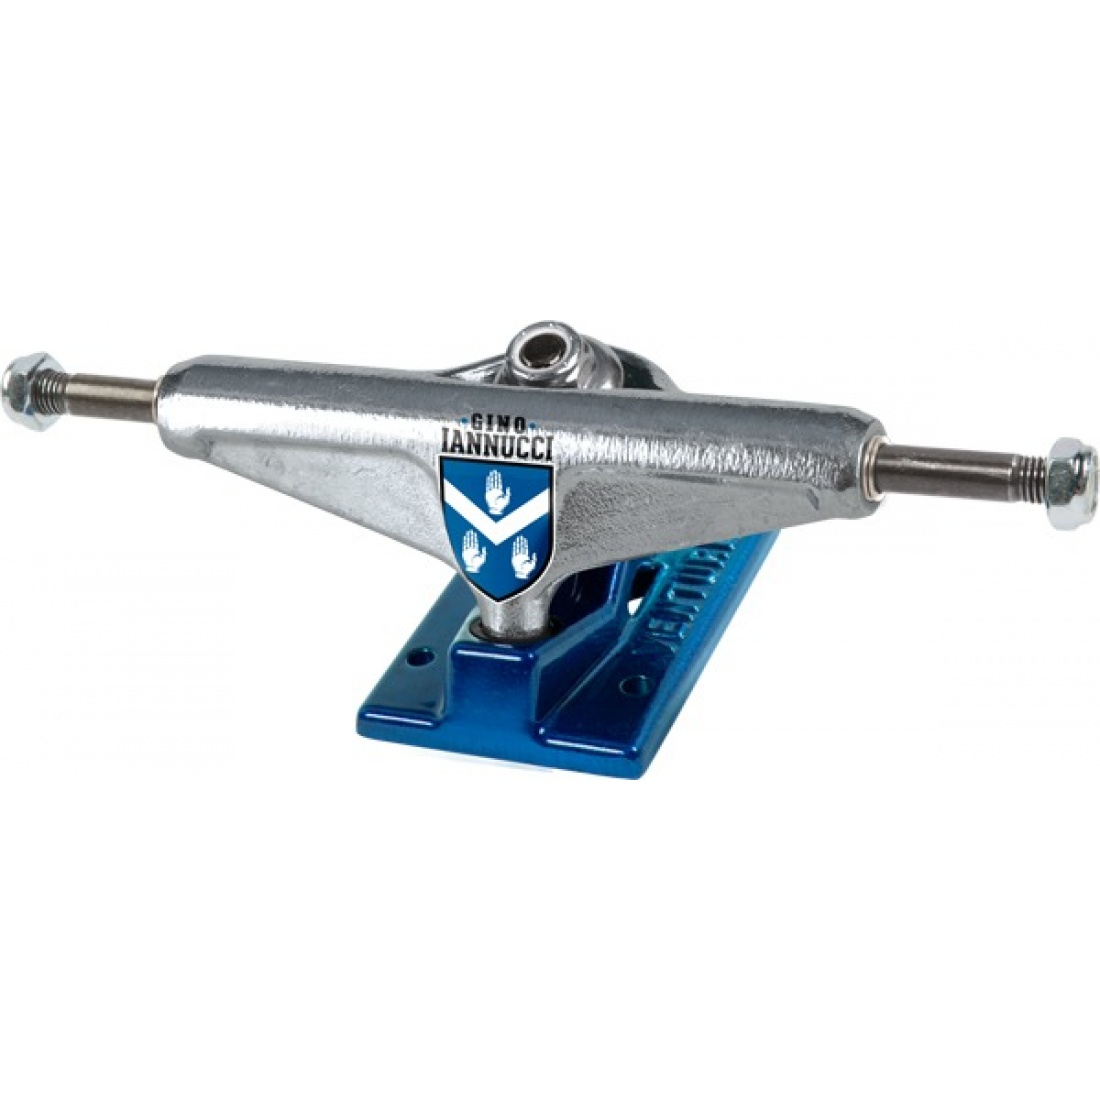 VE-HI Iannucci Pro 5.0 Trucks  (Set of 2)